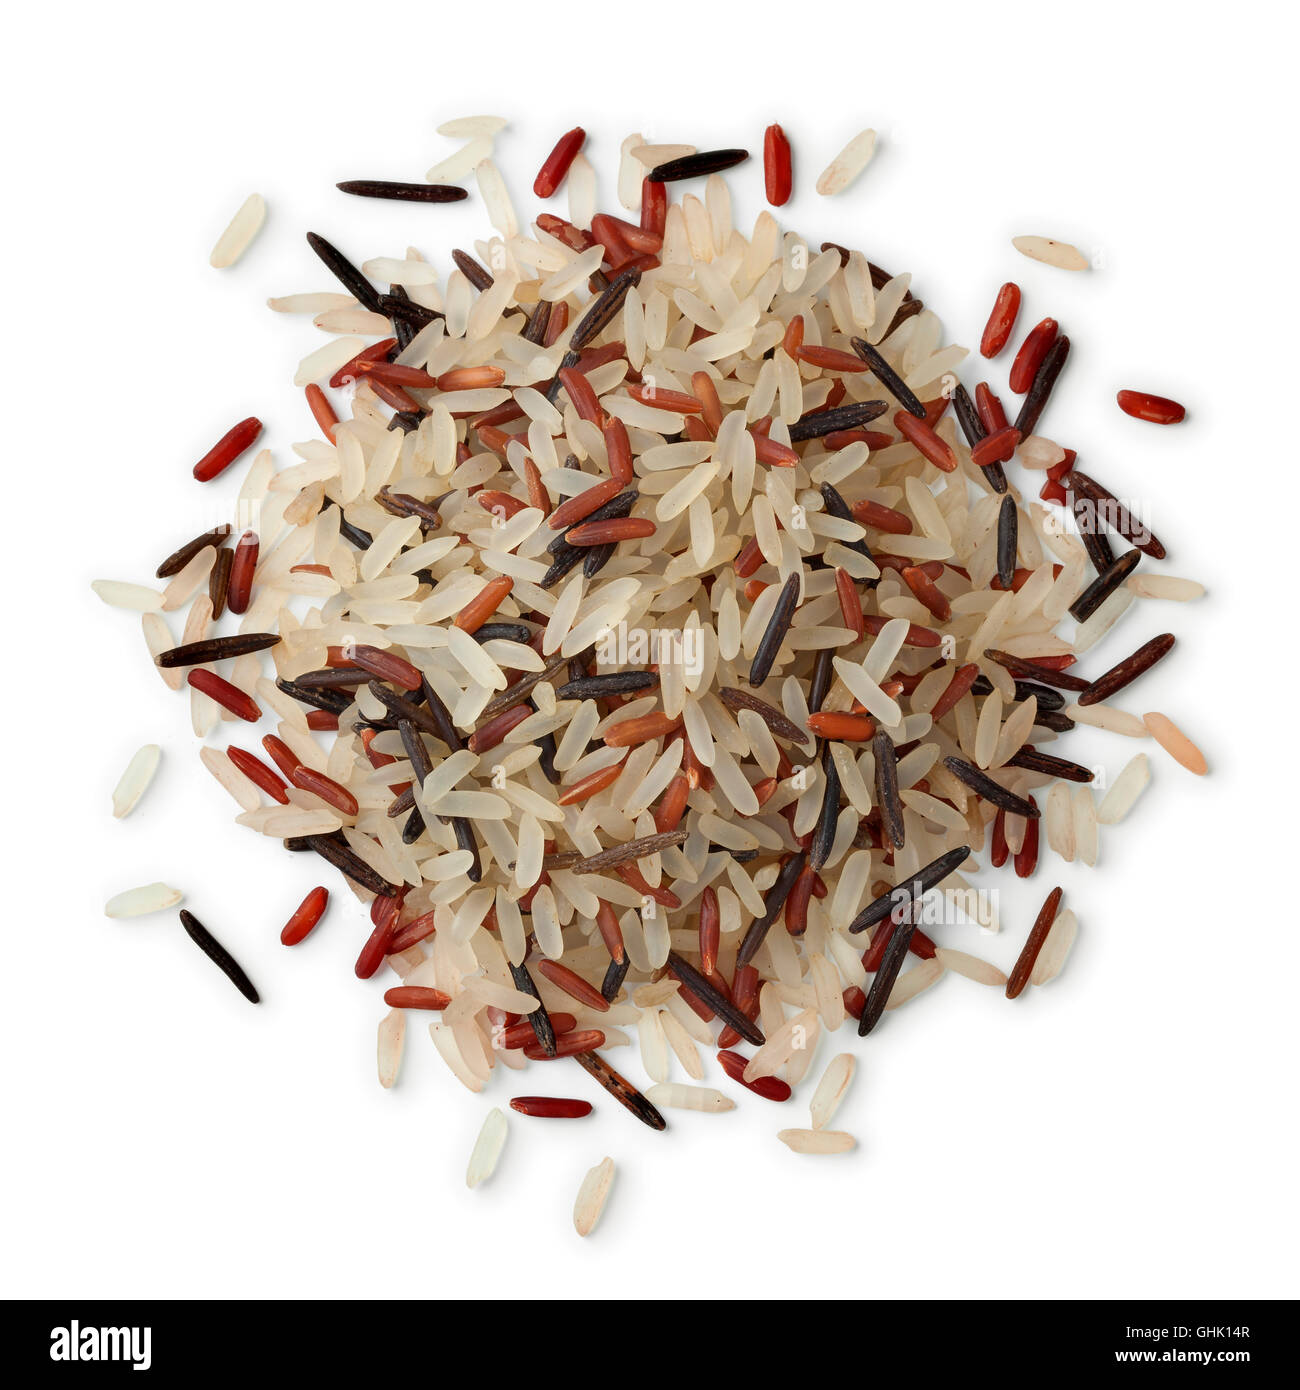 Heap of wild, red and white rice mix on white background - Stock Image